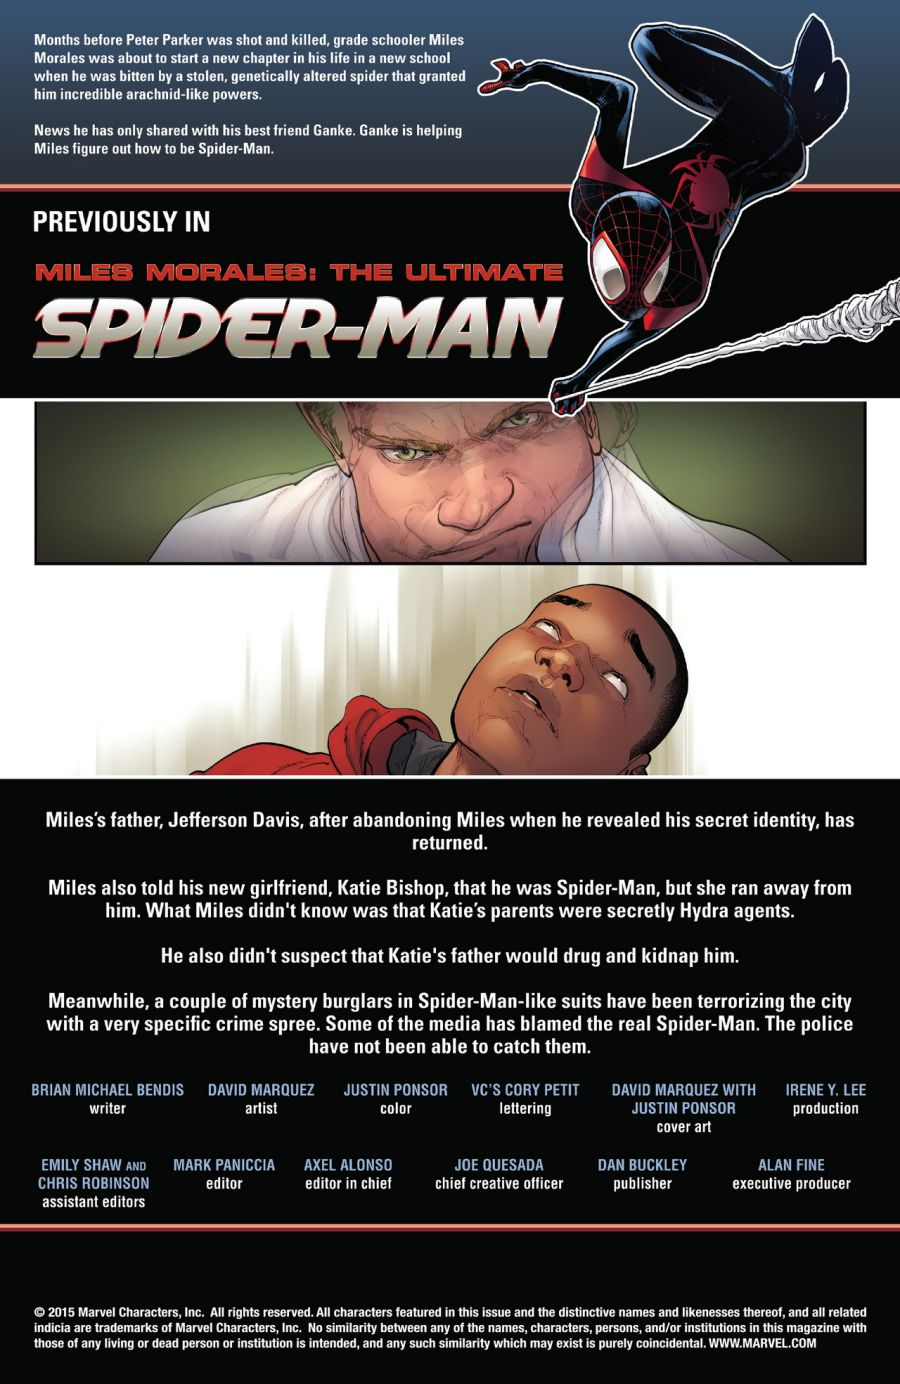 Miles Morales: The Ultimate Spider-Man #11